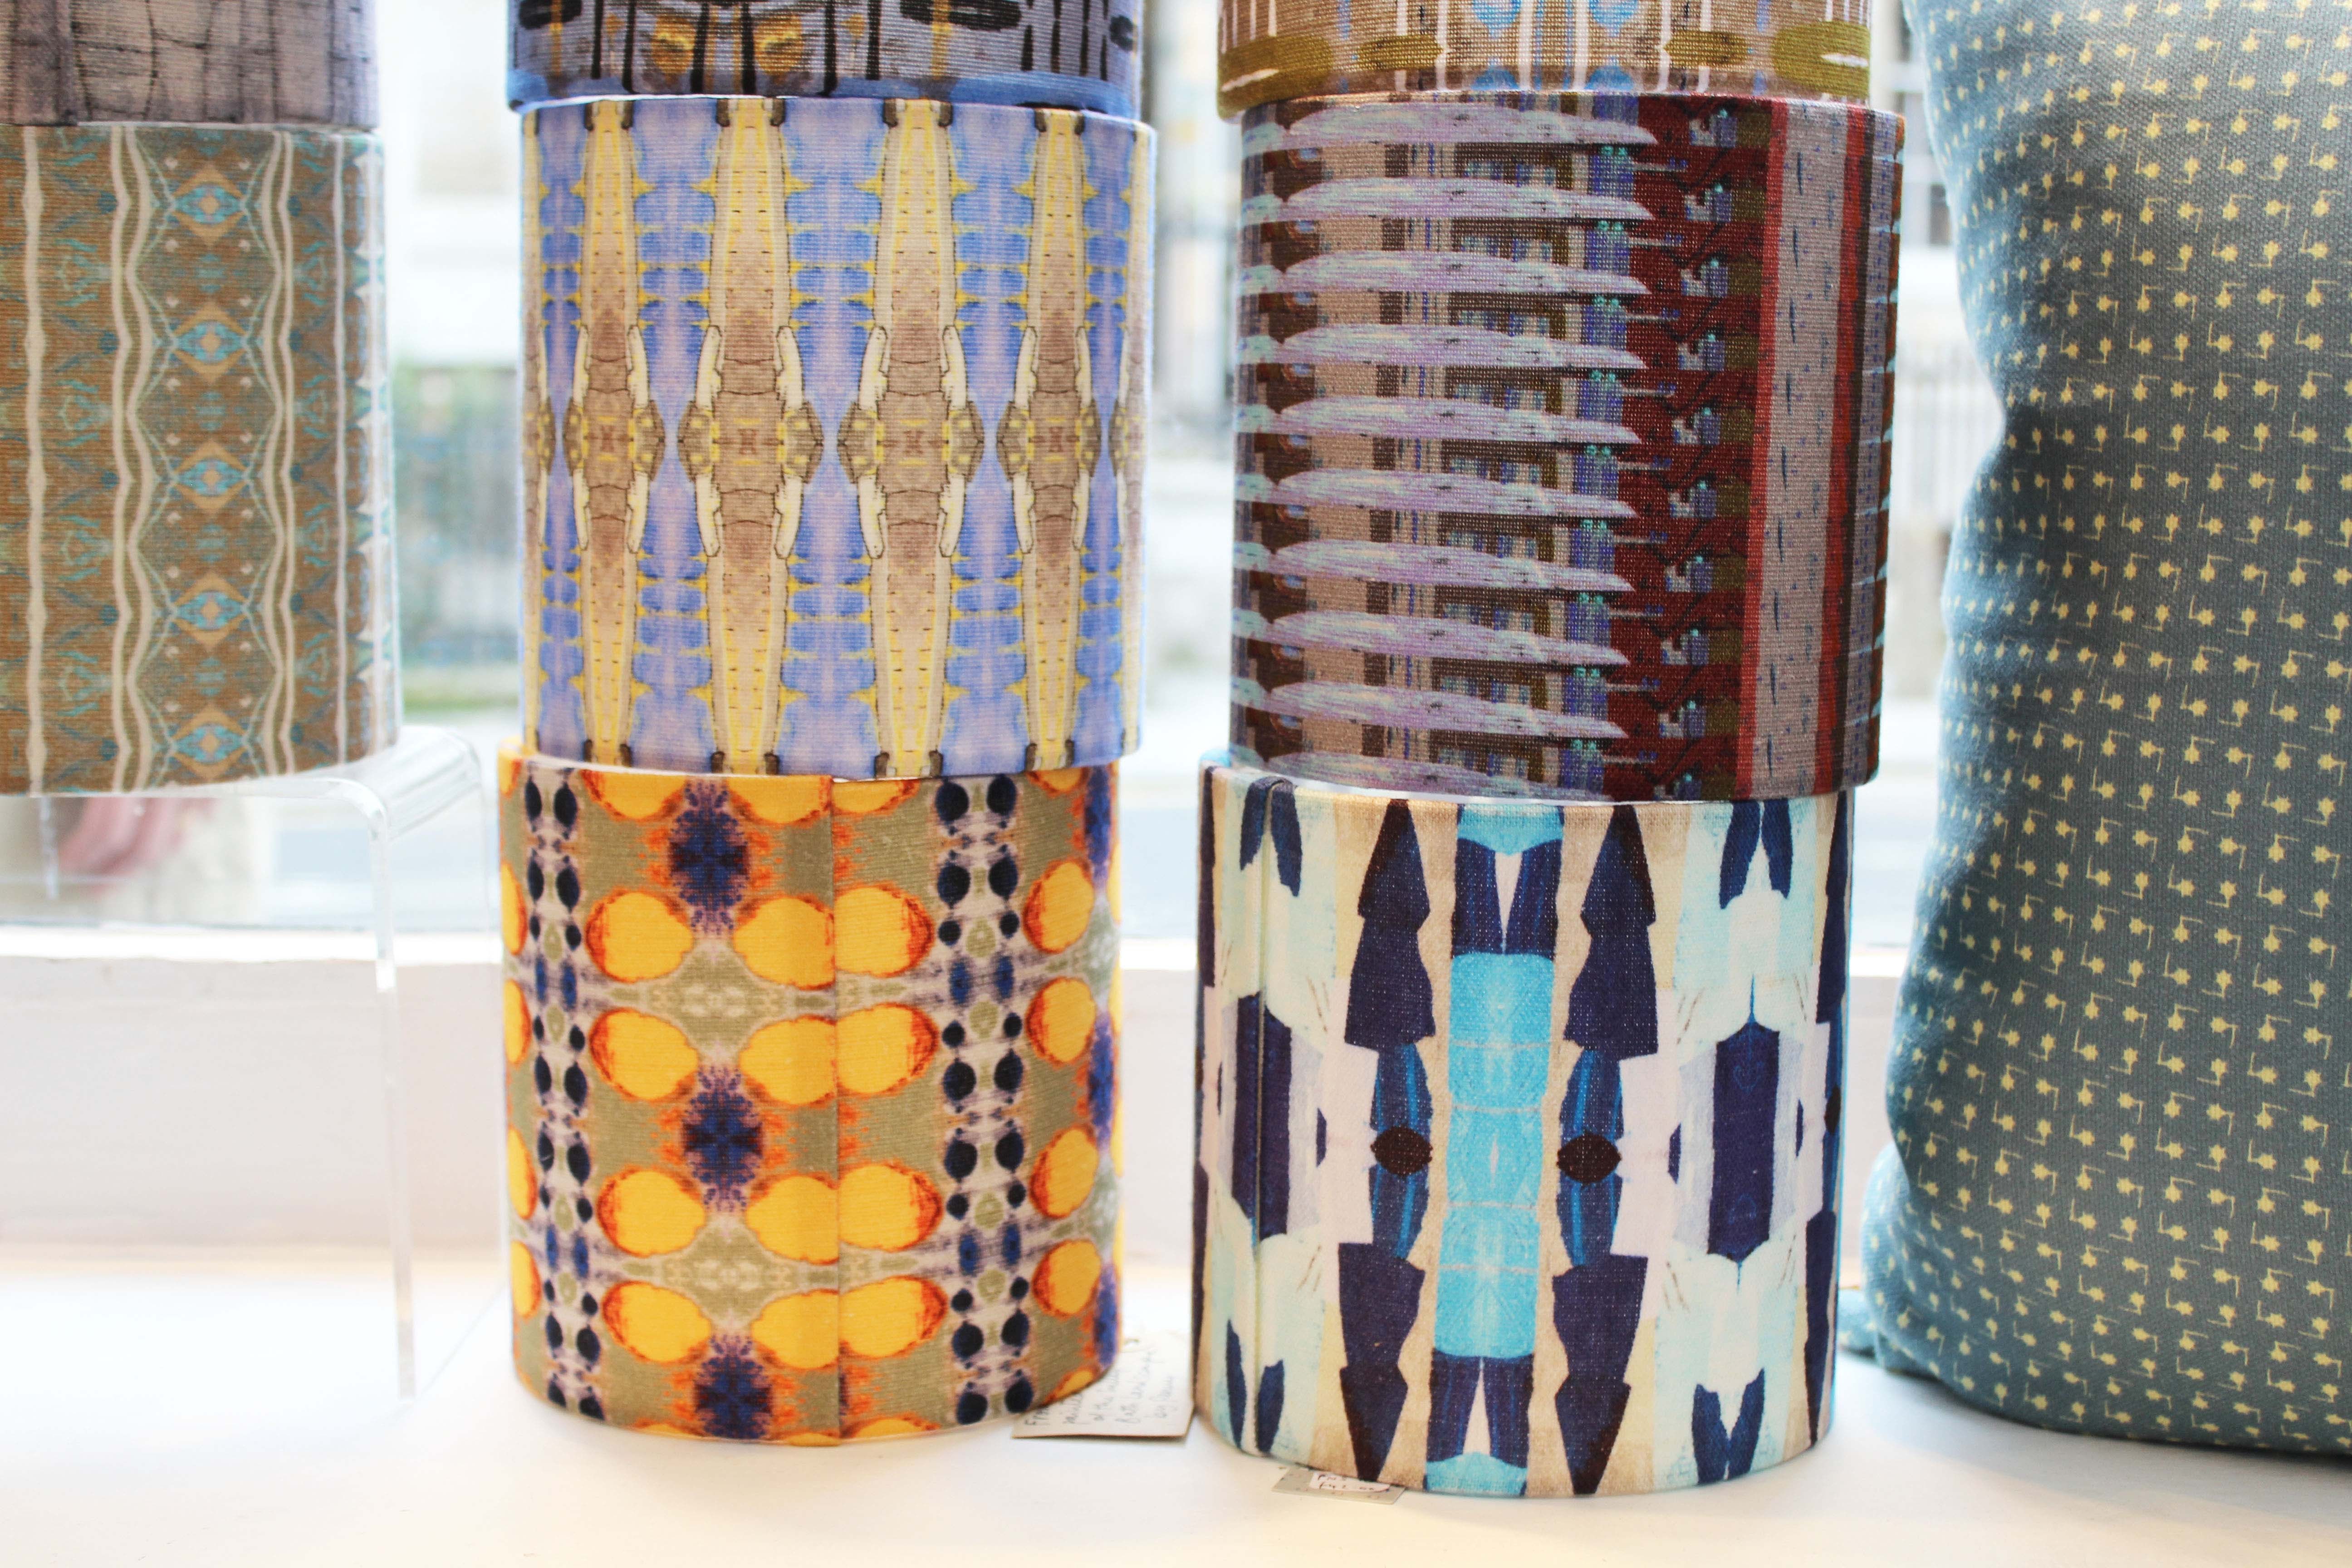 Penny Seume Lampshades